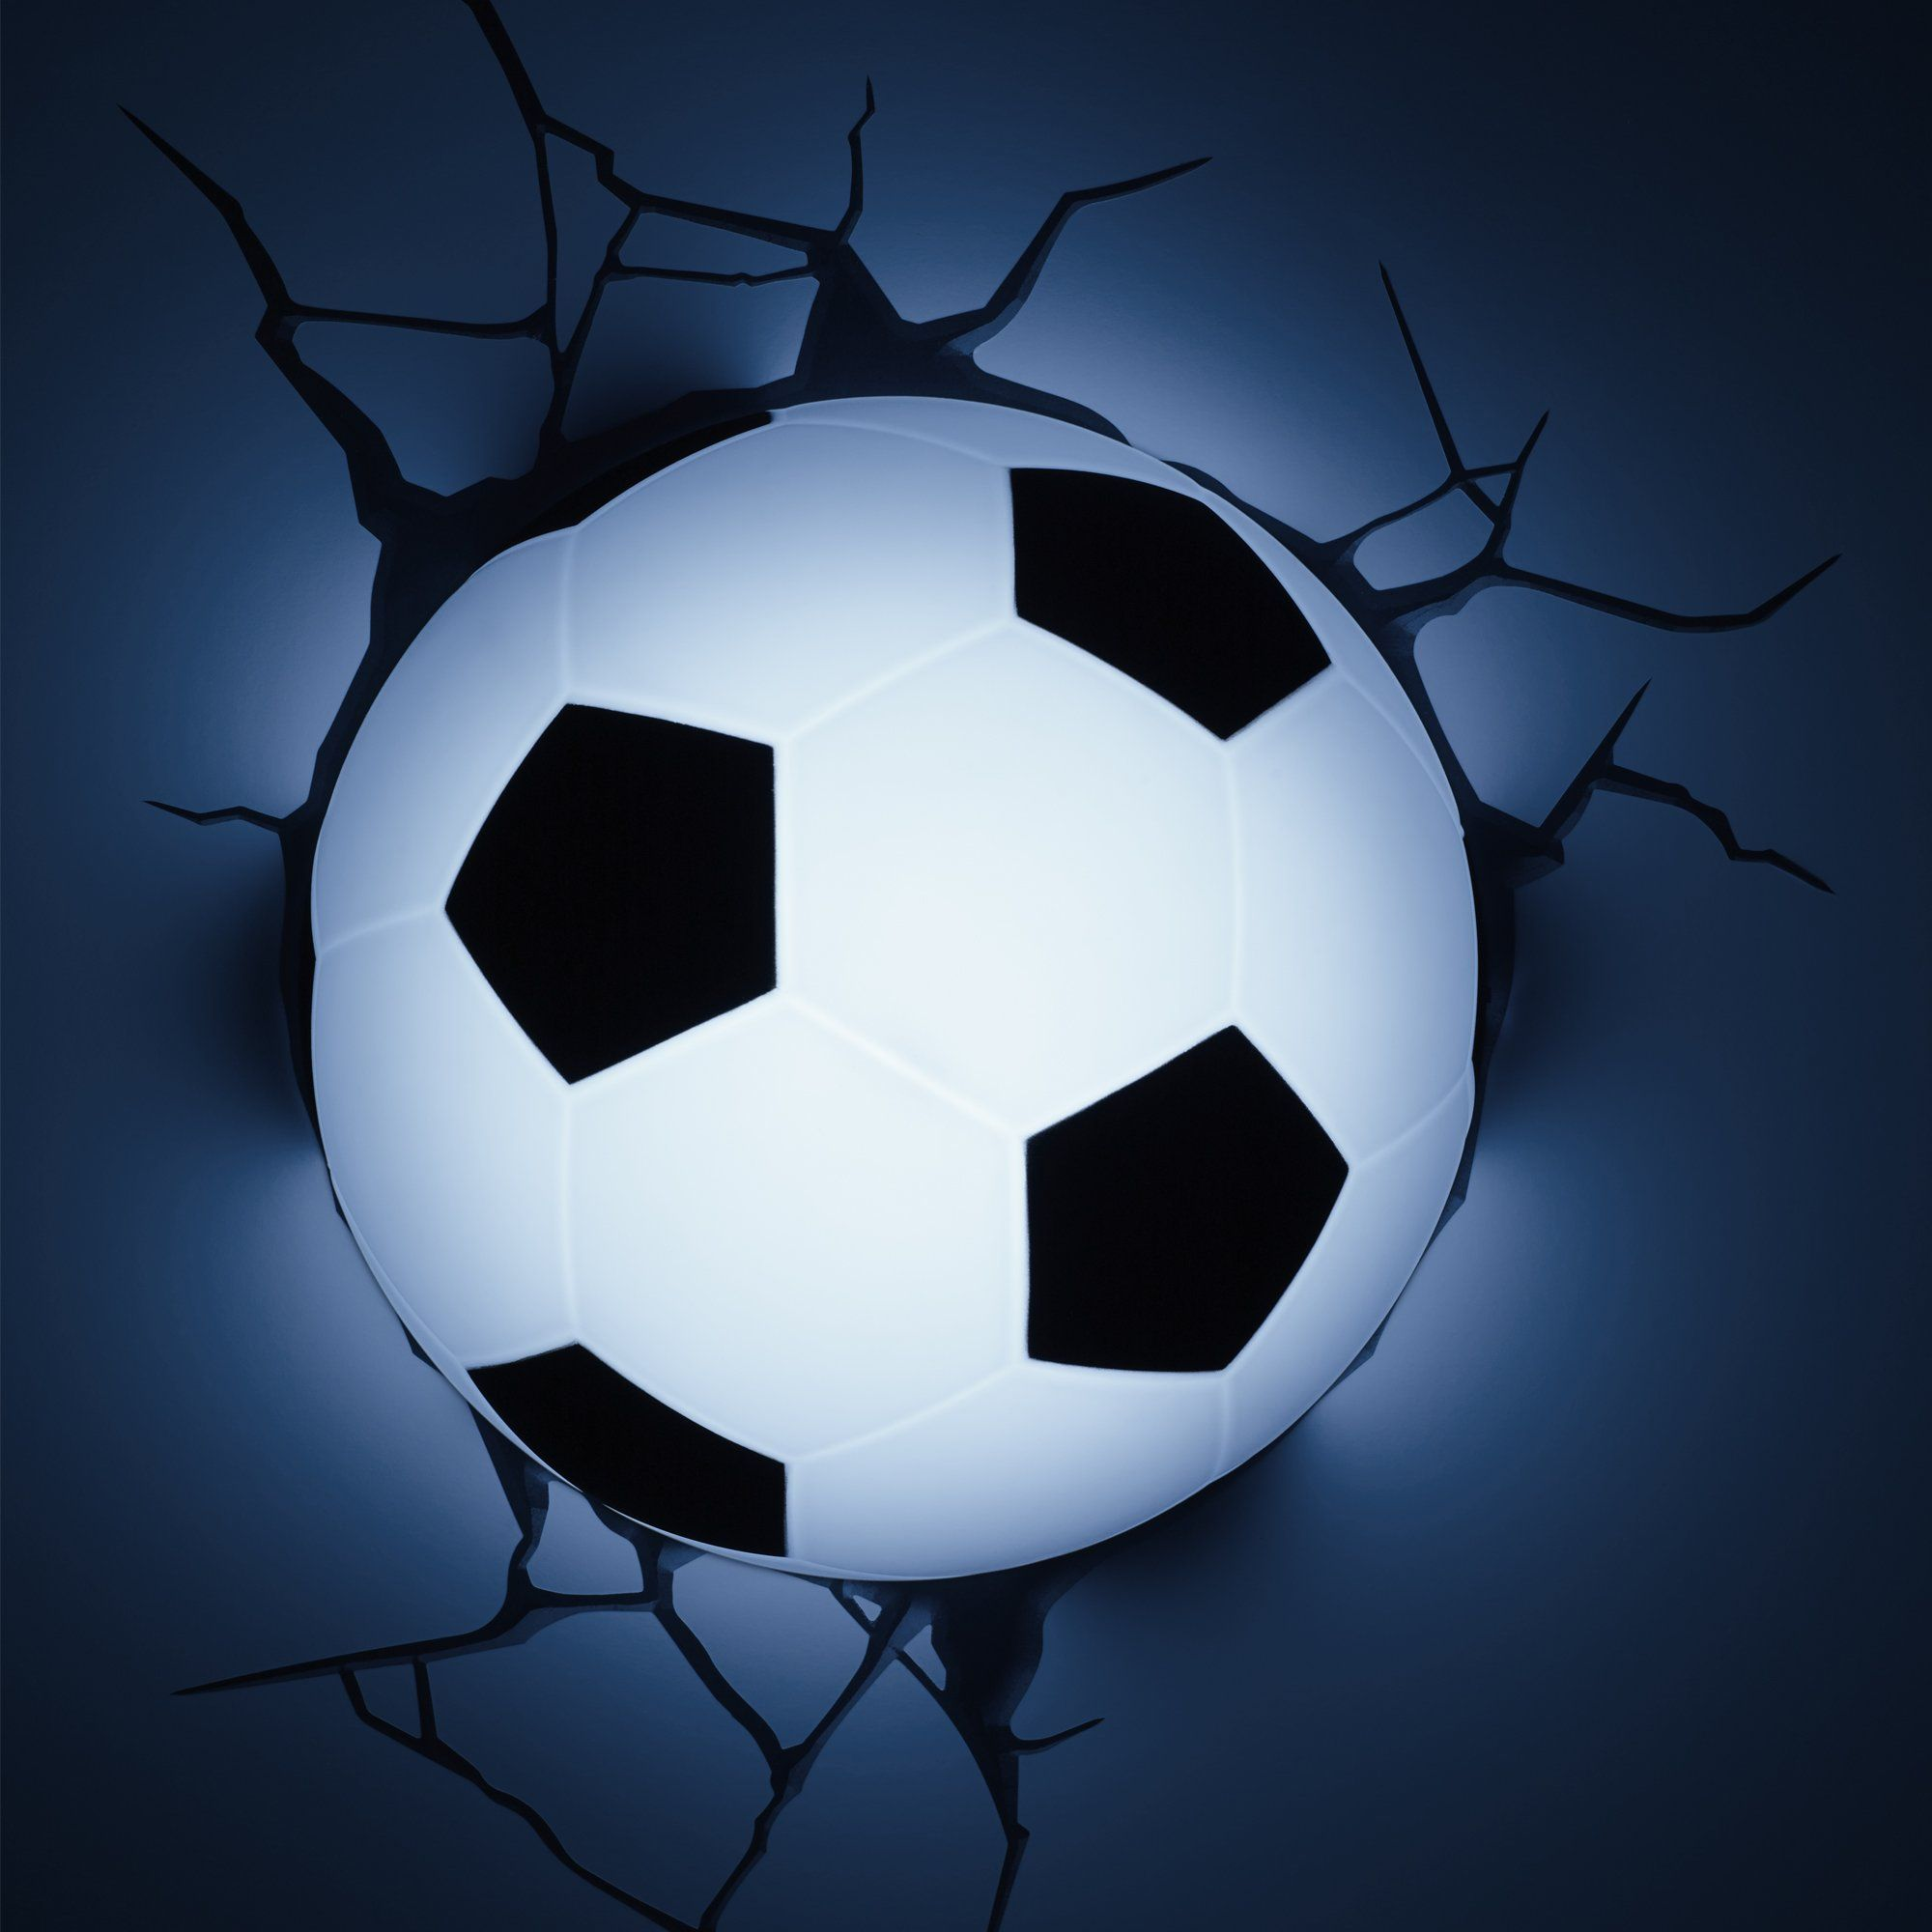 3dlightfx Sports Soccer Ball 3d Deco Light Click Image For More Details It Is Amazon Affiliate Link Kids Football Lights Football Wall Wall Mounted Light